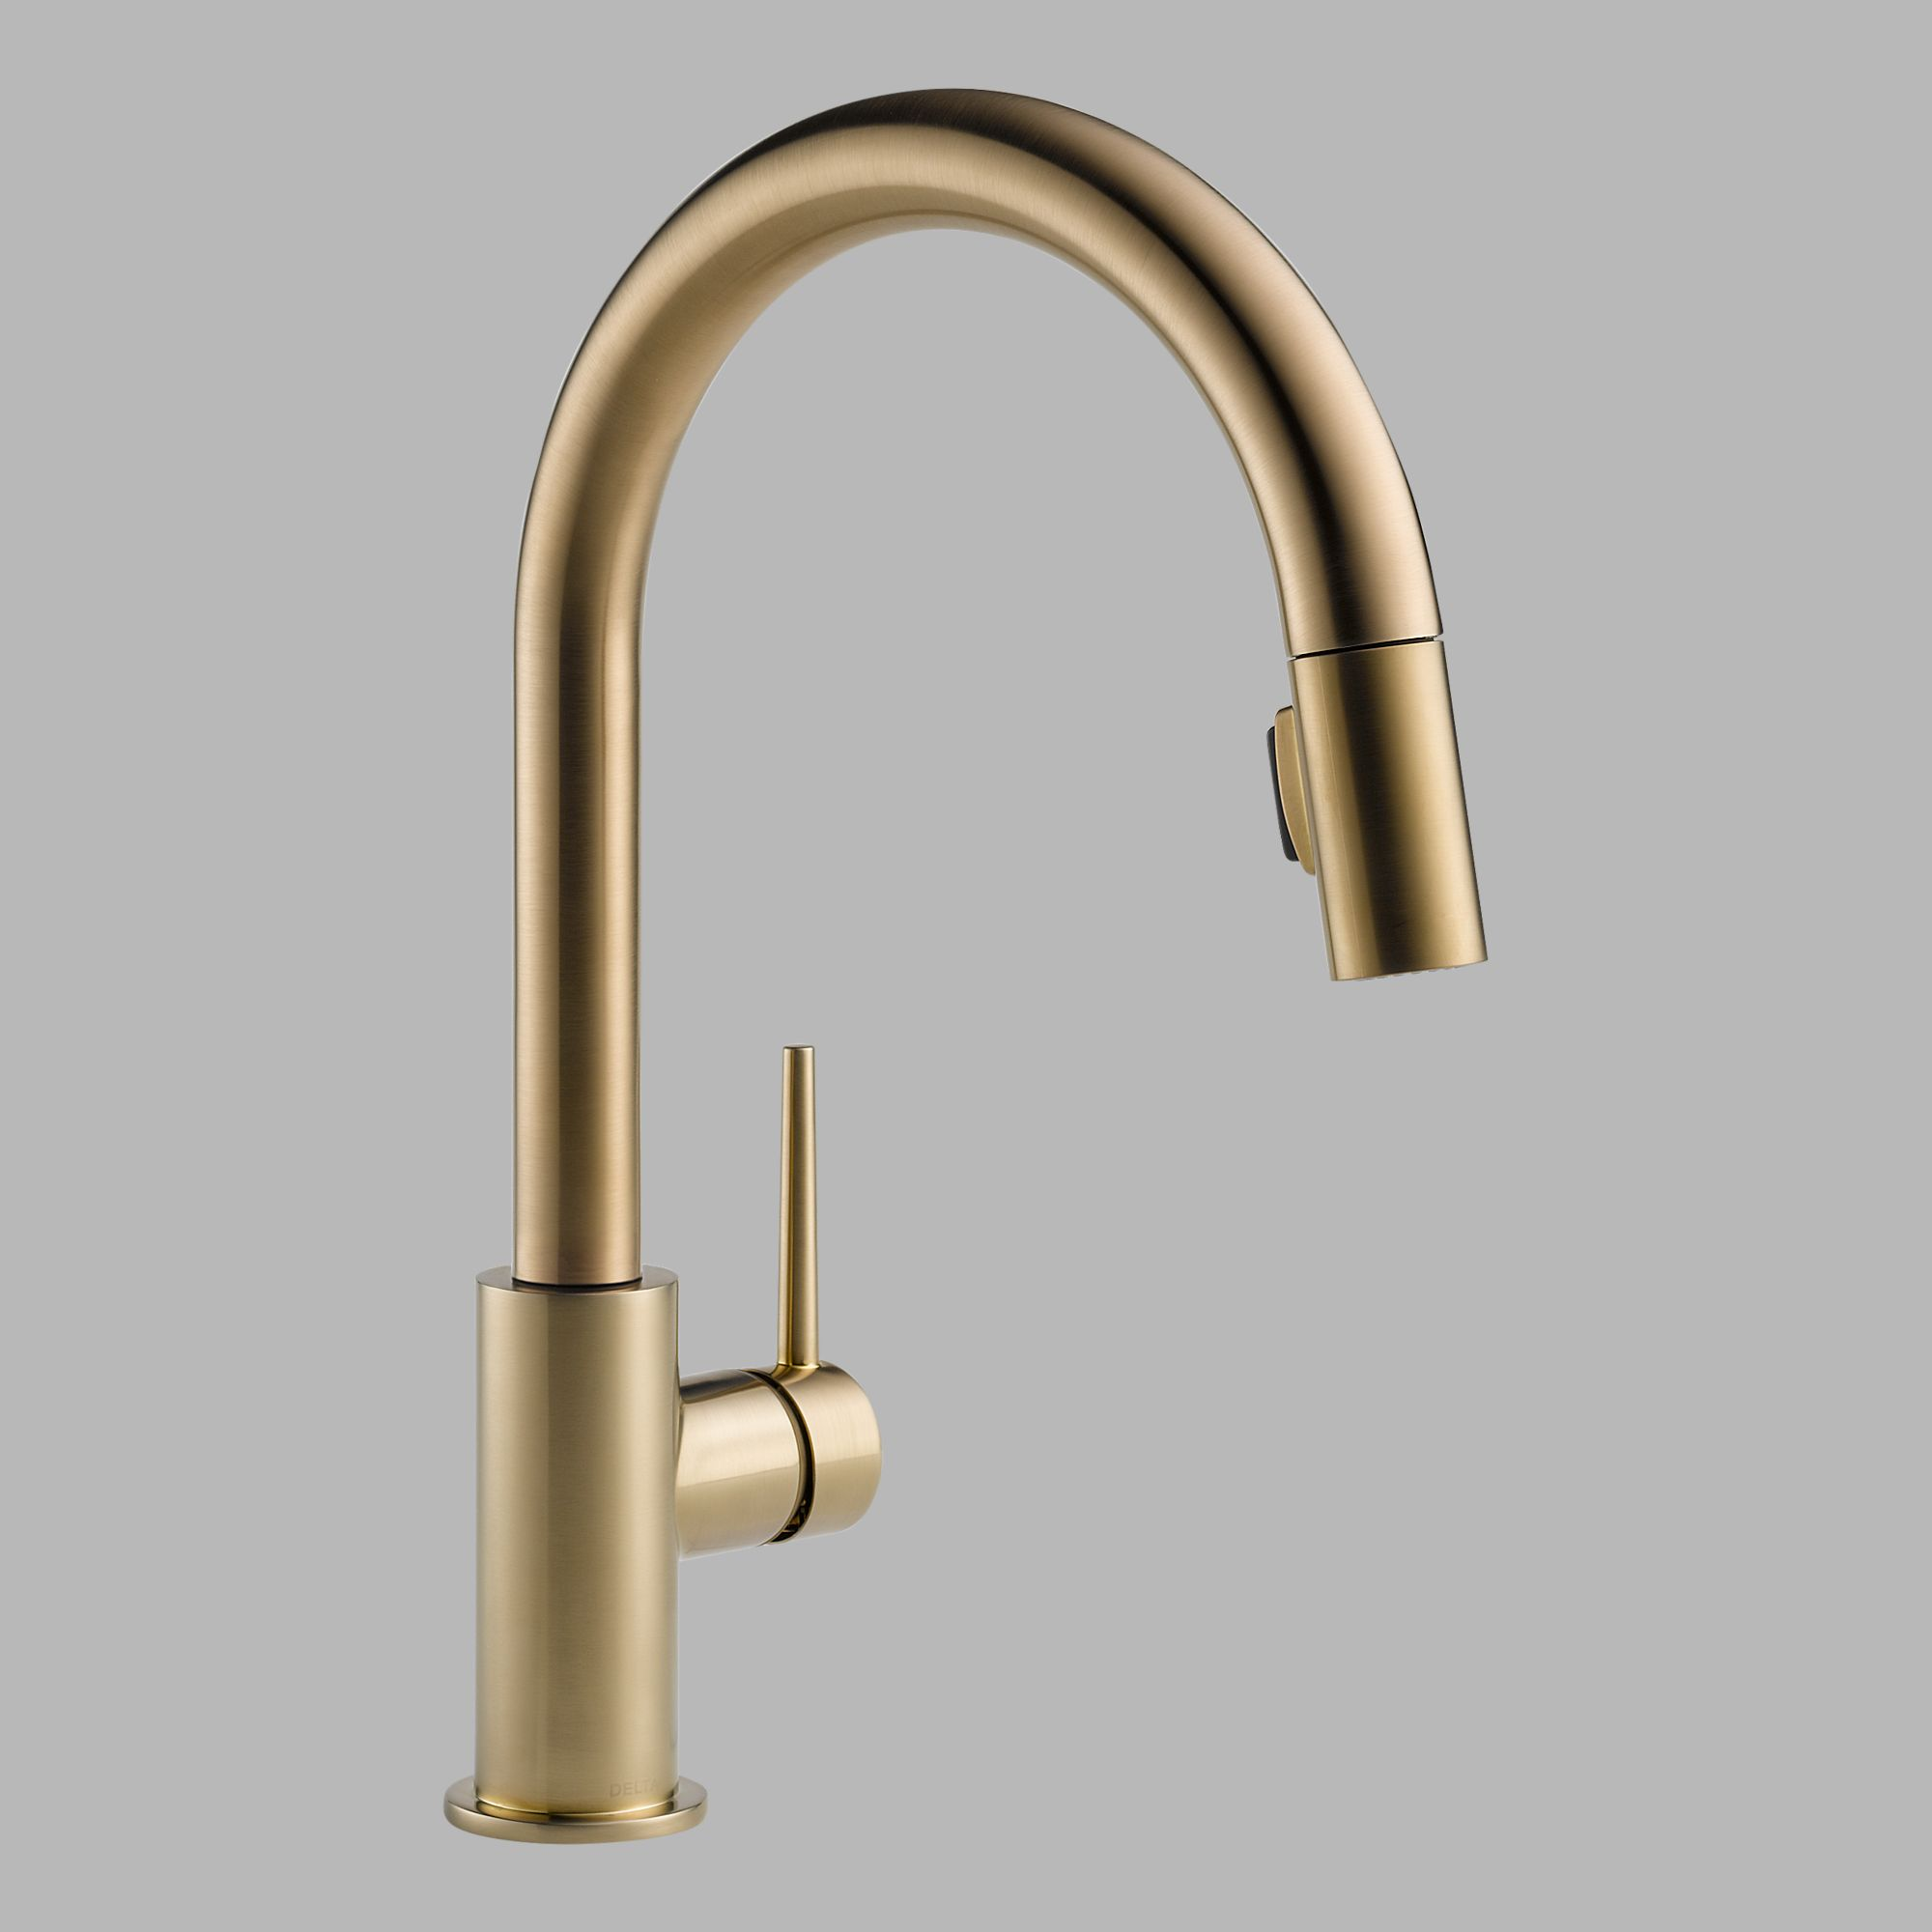 Delta 9159 Cz Dst Single Handle Pull Down Kitchen Faucet Delta